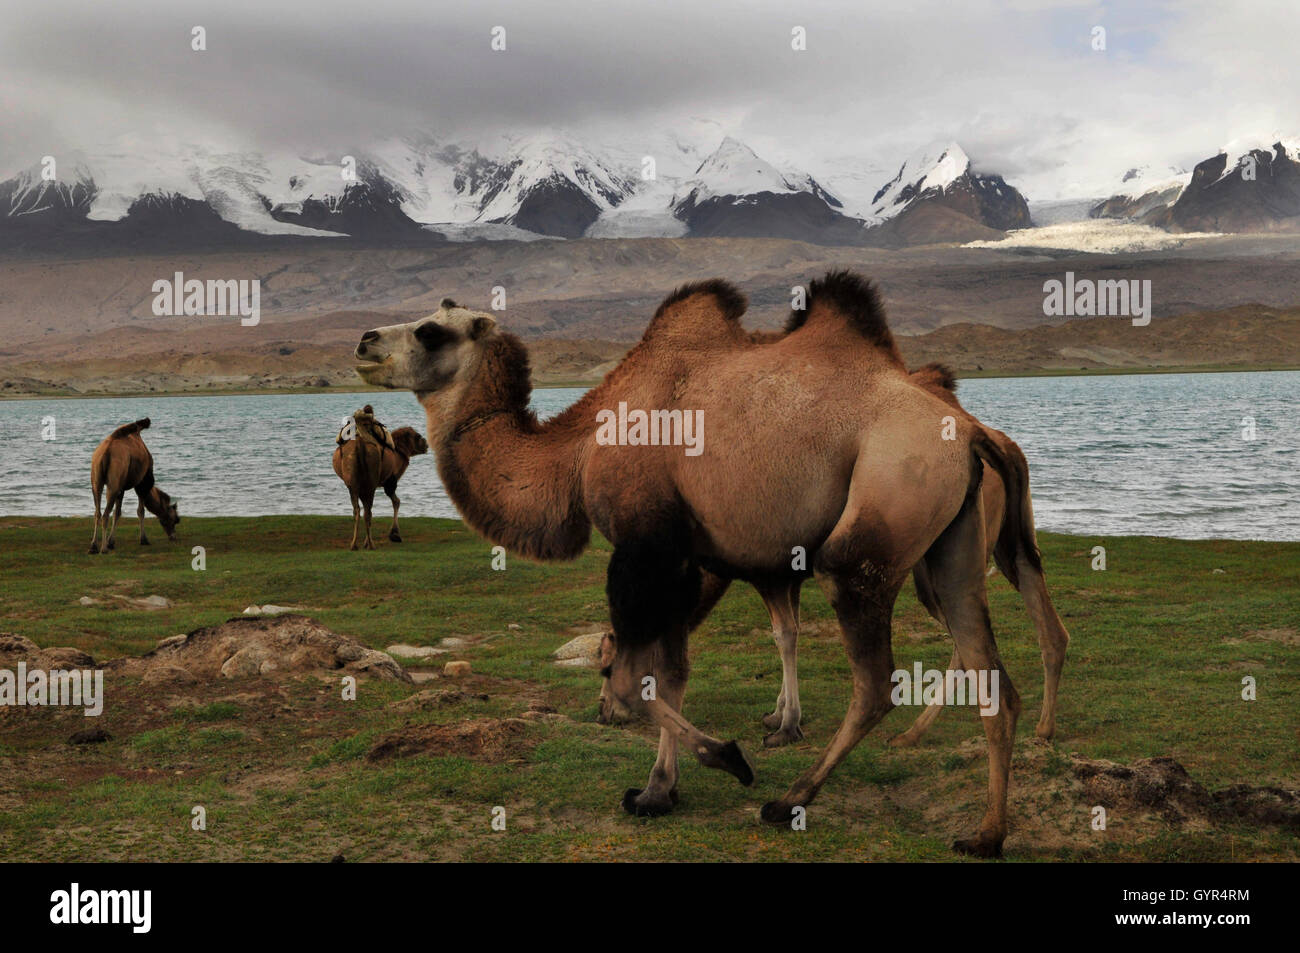 Bactrian camels grazing by Karakul lake in Xinjiang, China. - Stock Image